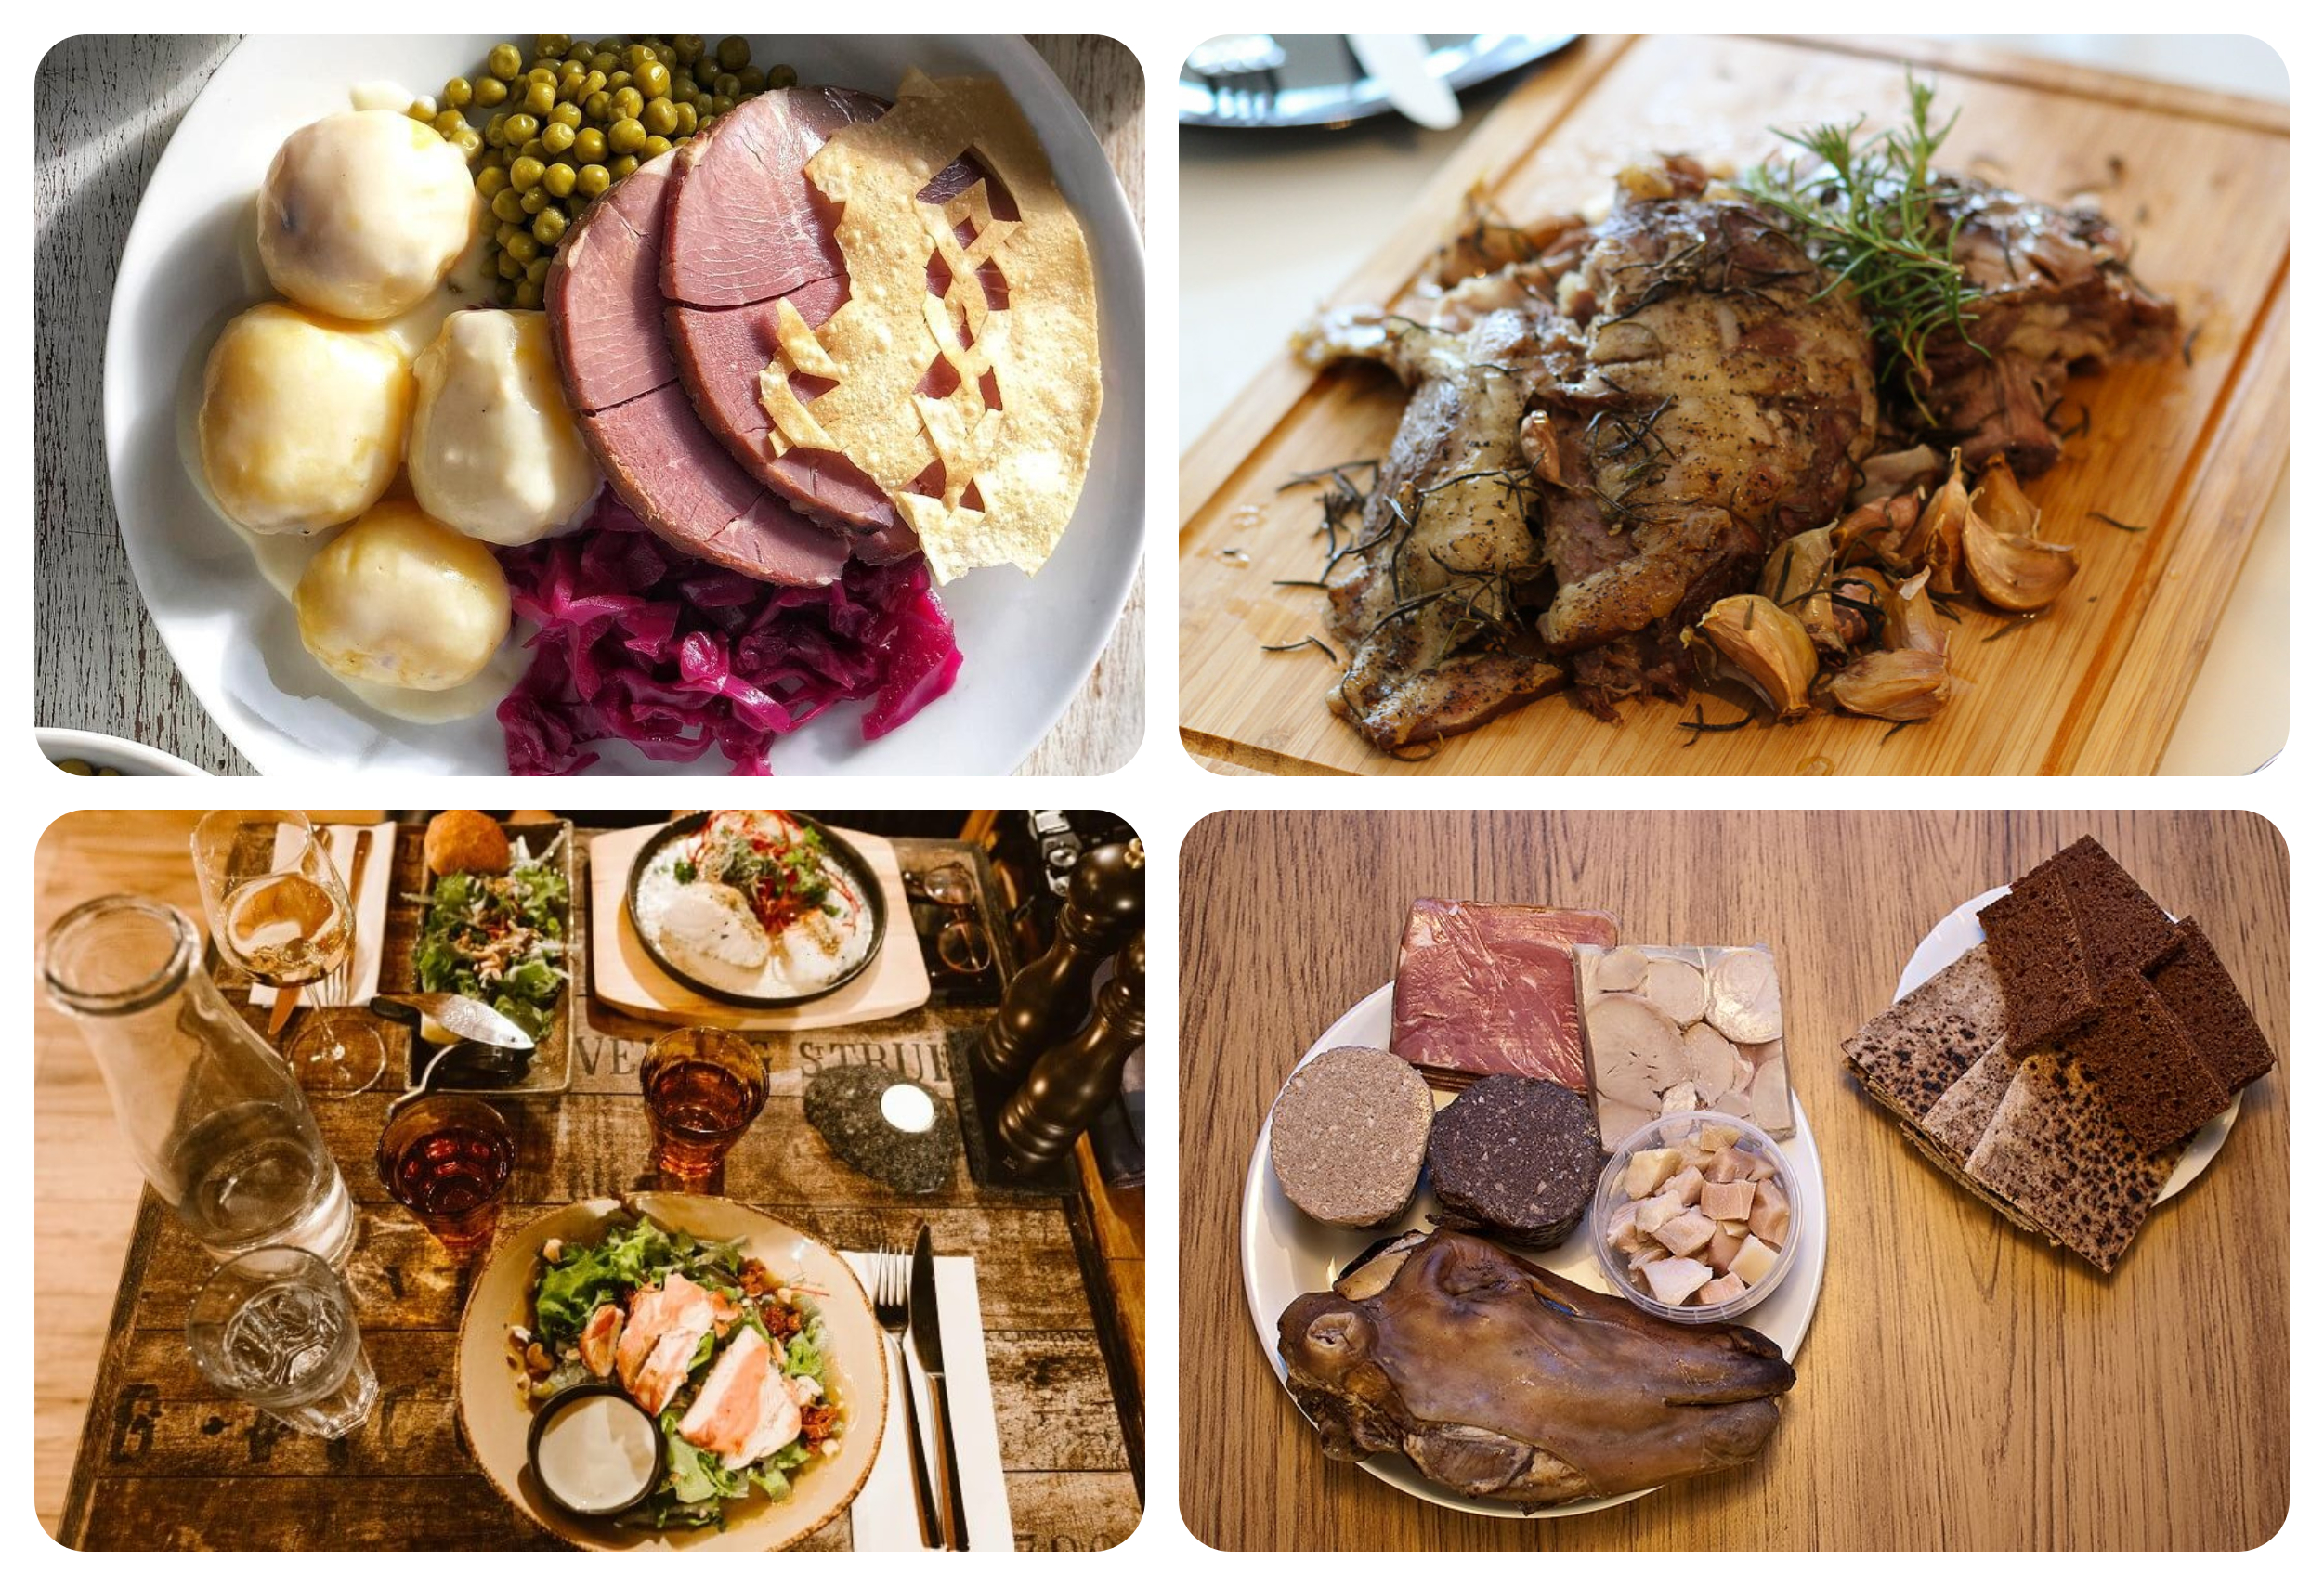 Unique foods to try in Iceland